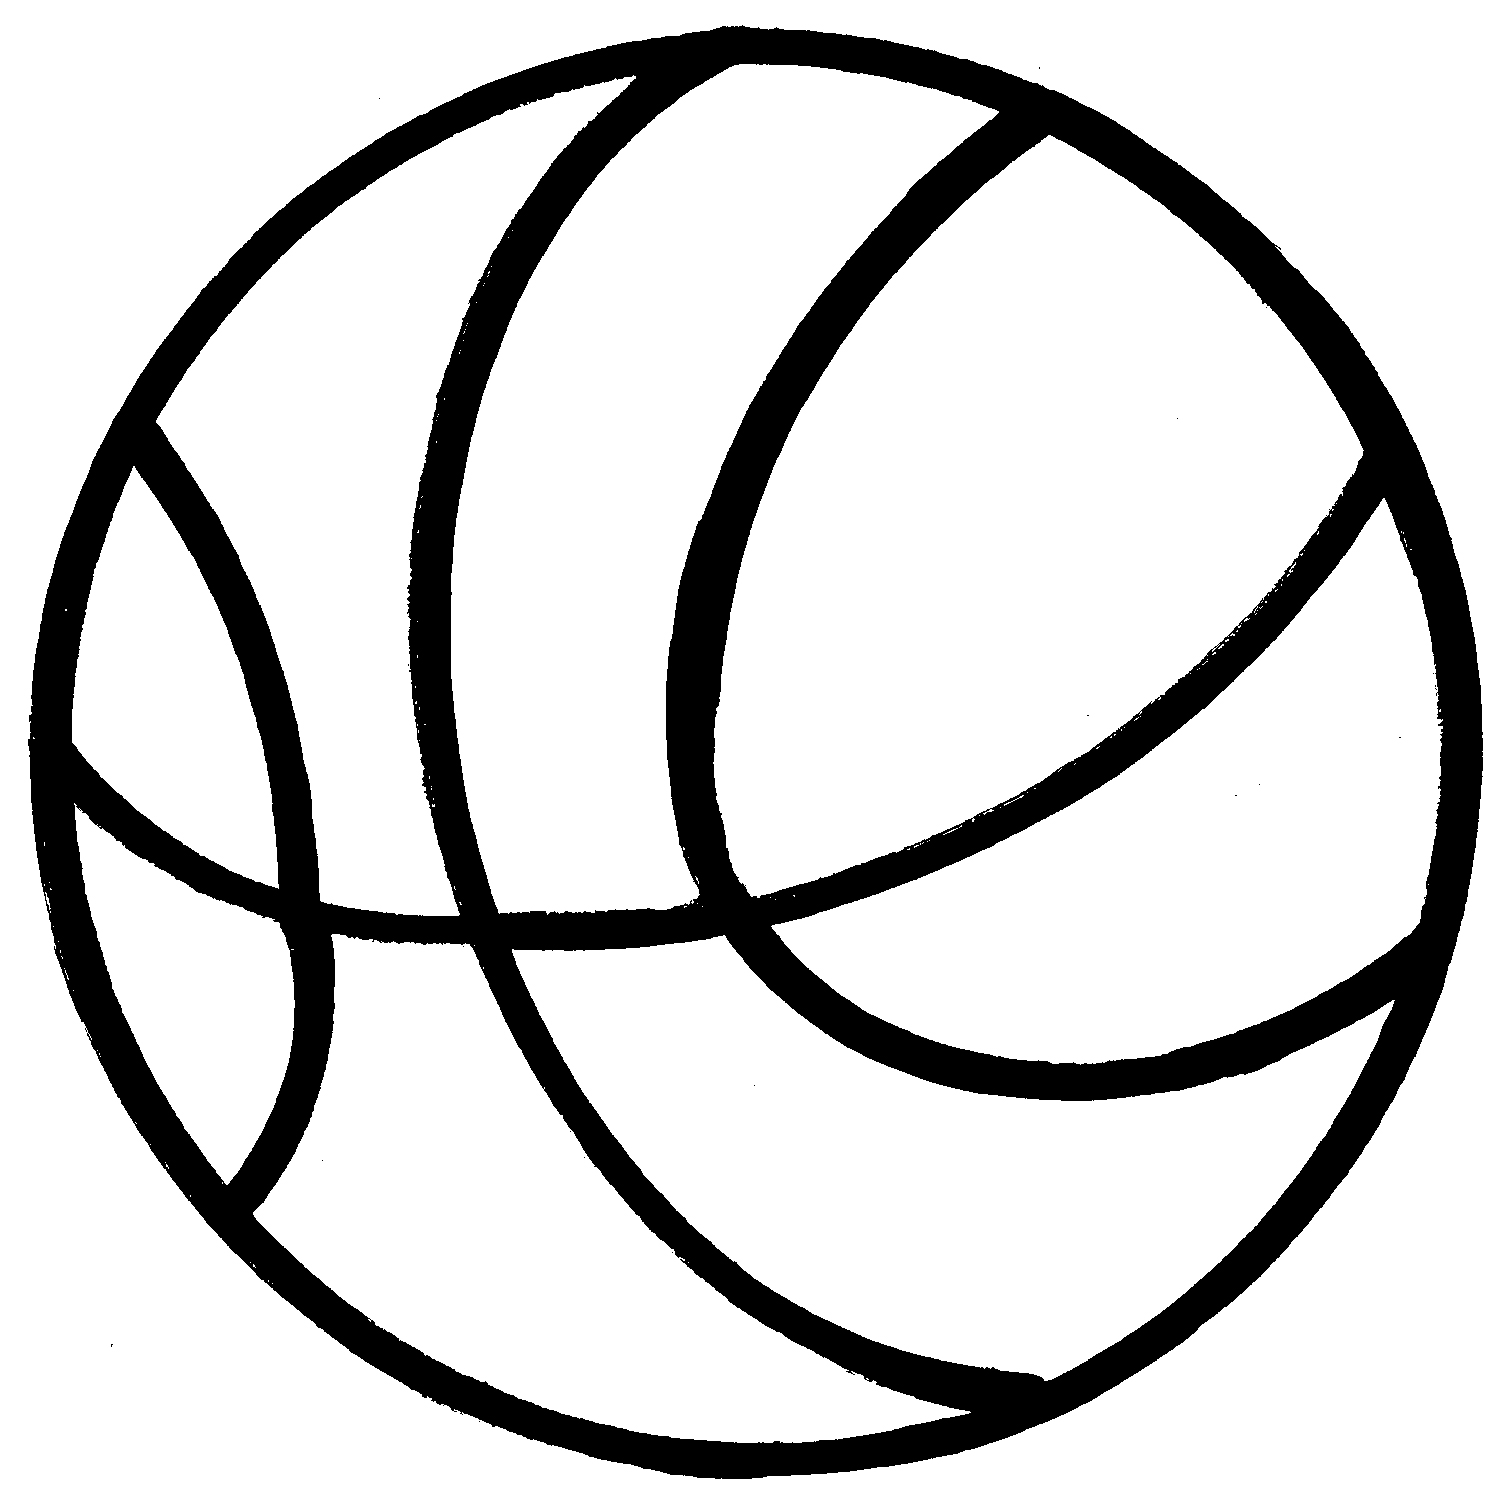 Basketball clipartuse golf balls. Ball clipart black and white